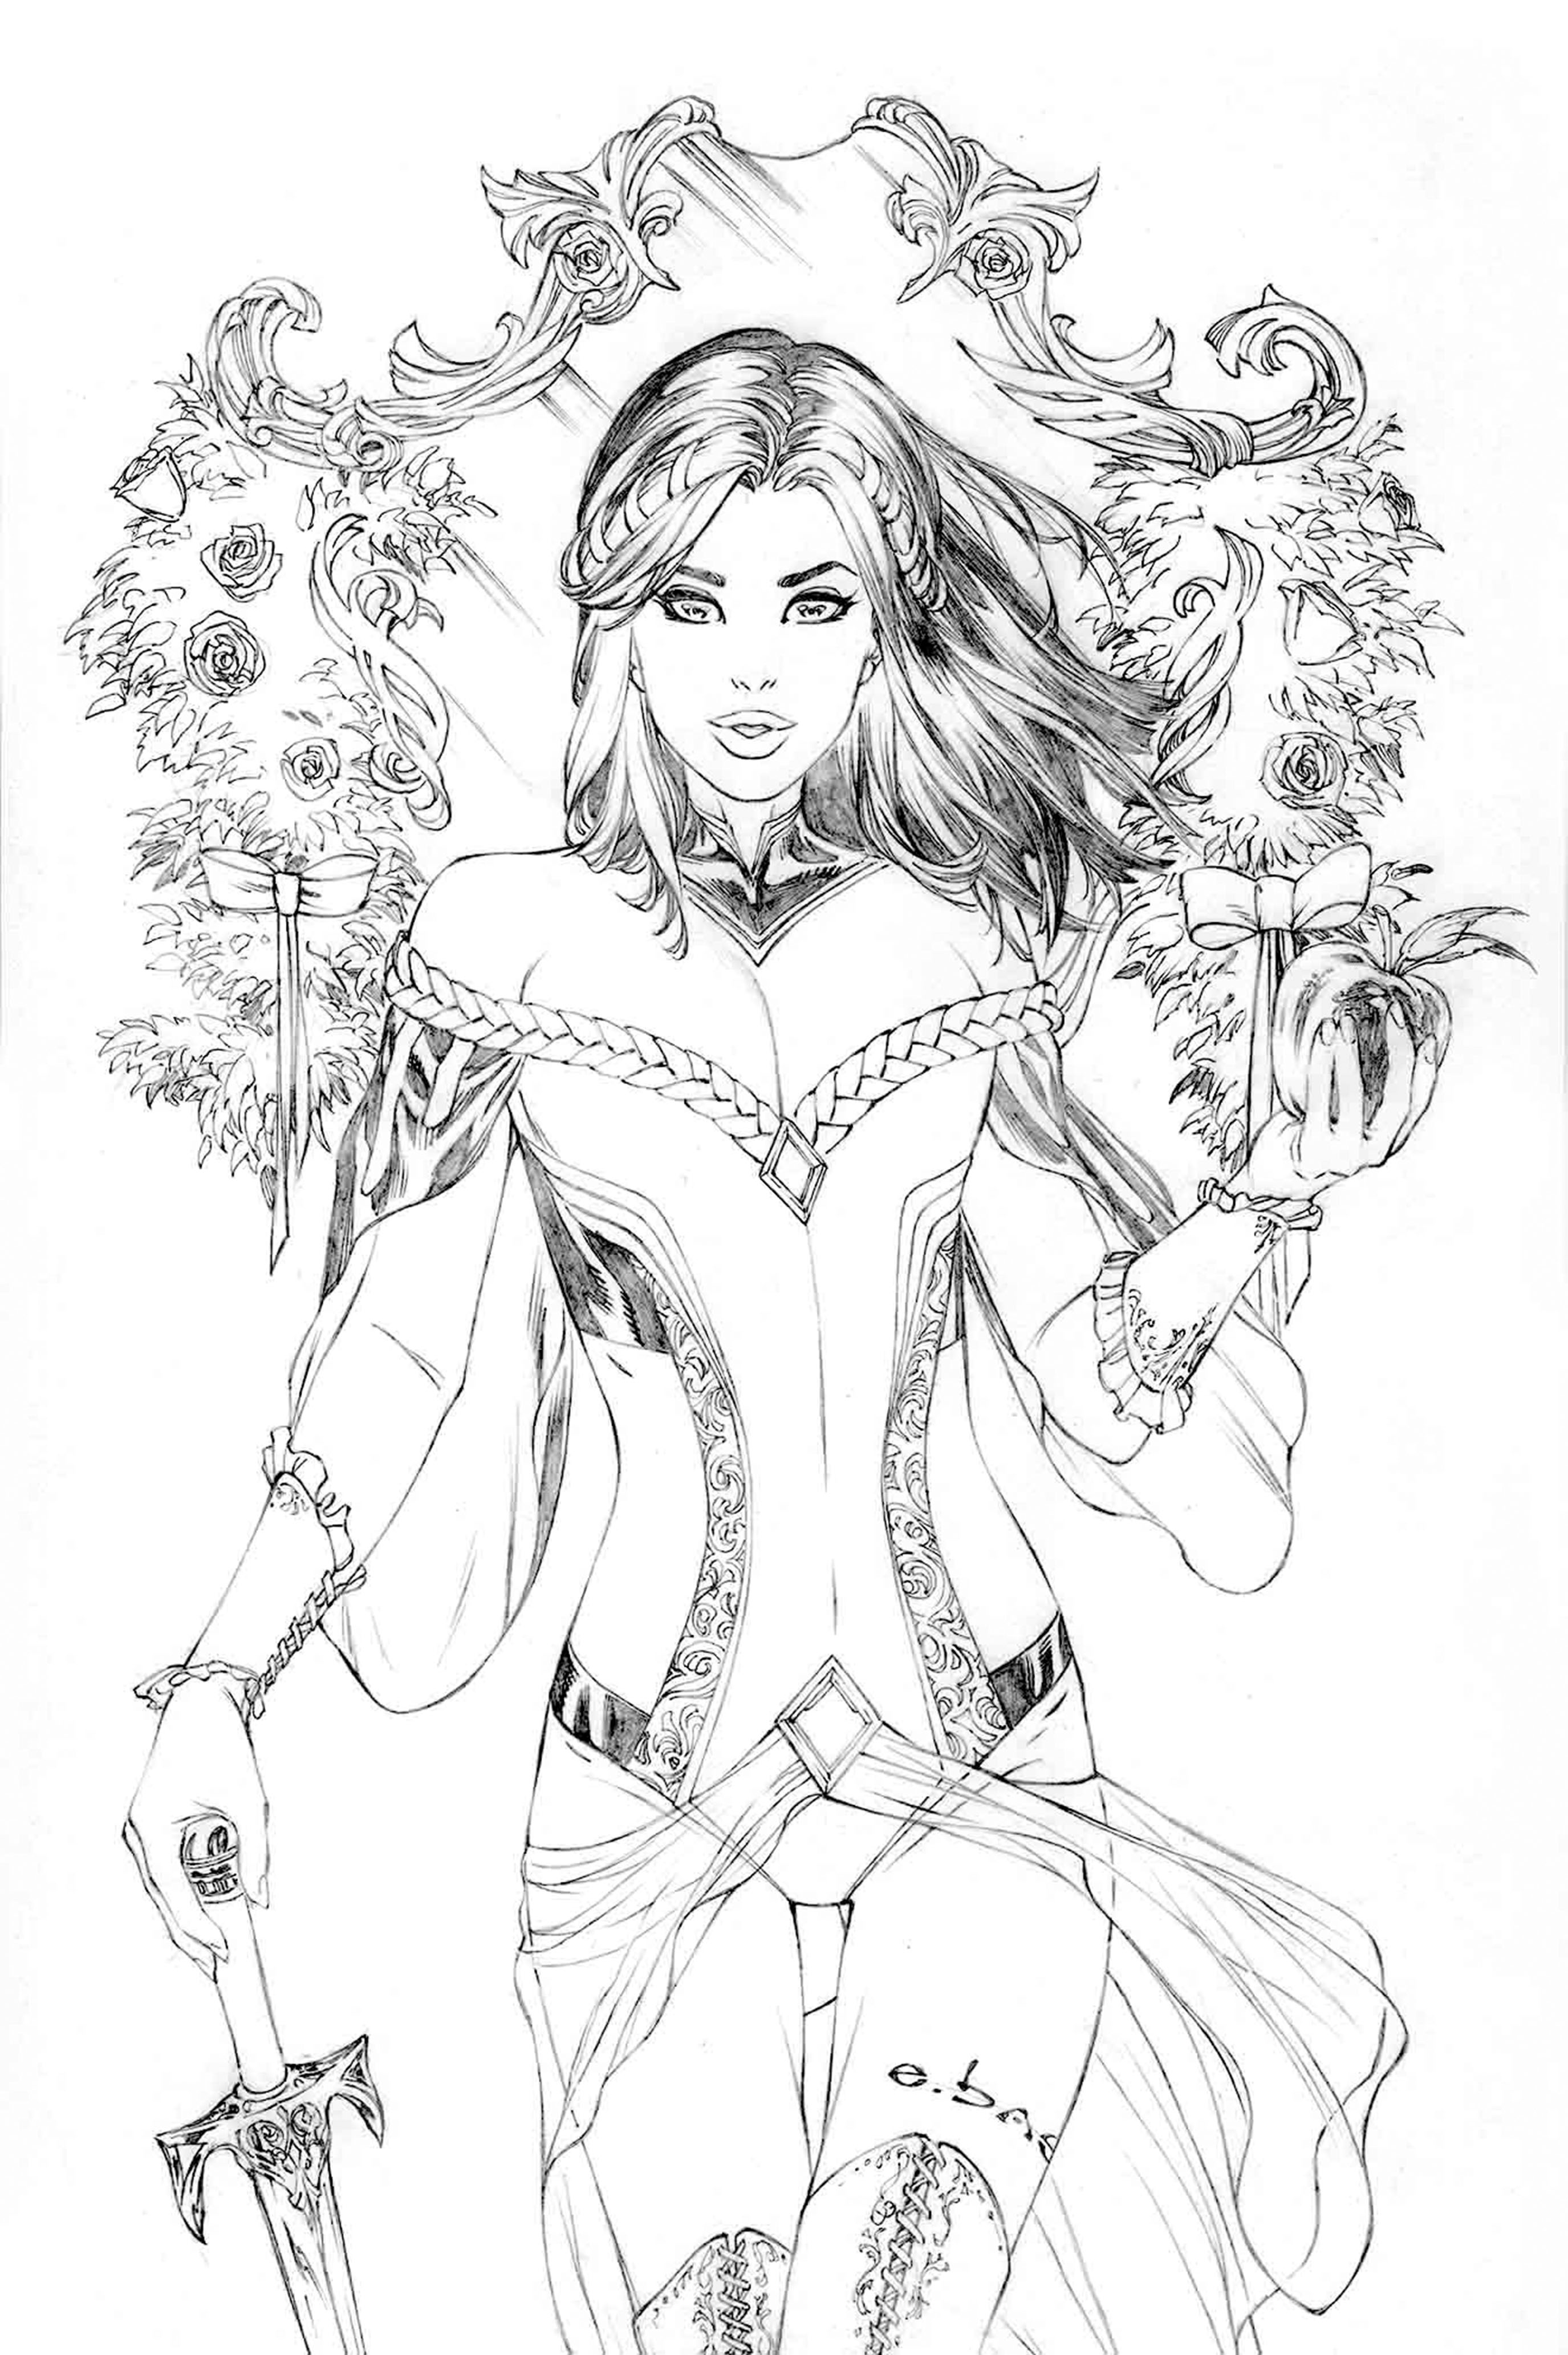 Zenescope Entertainment Set To Return To Its Roots With